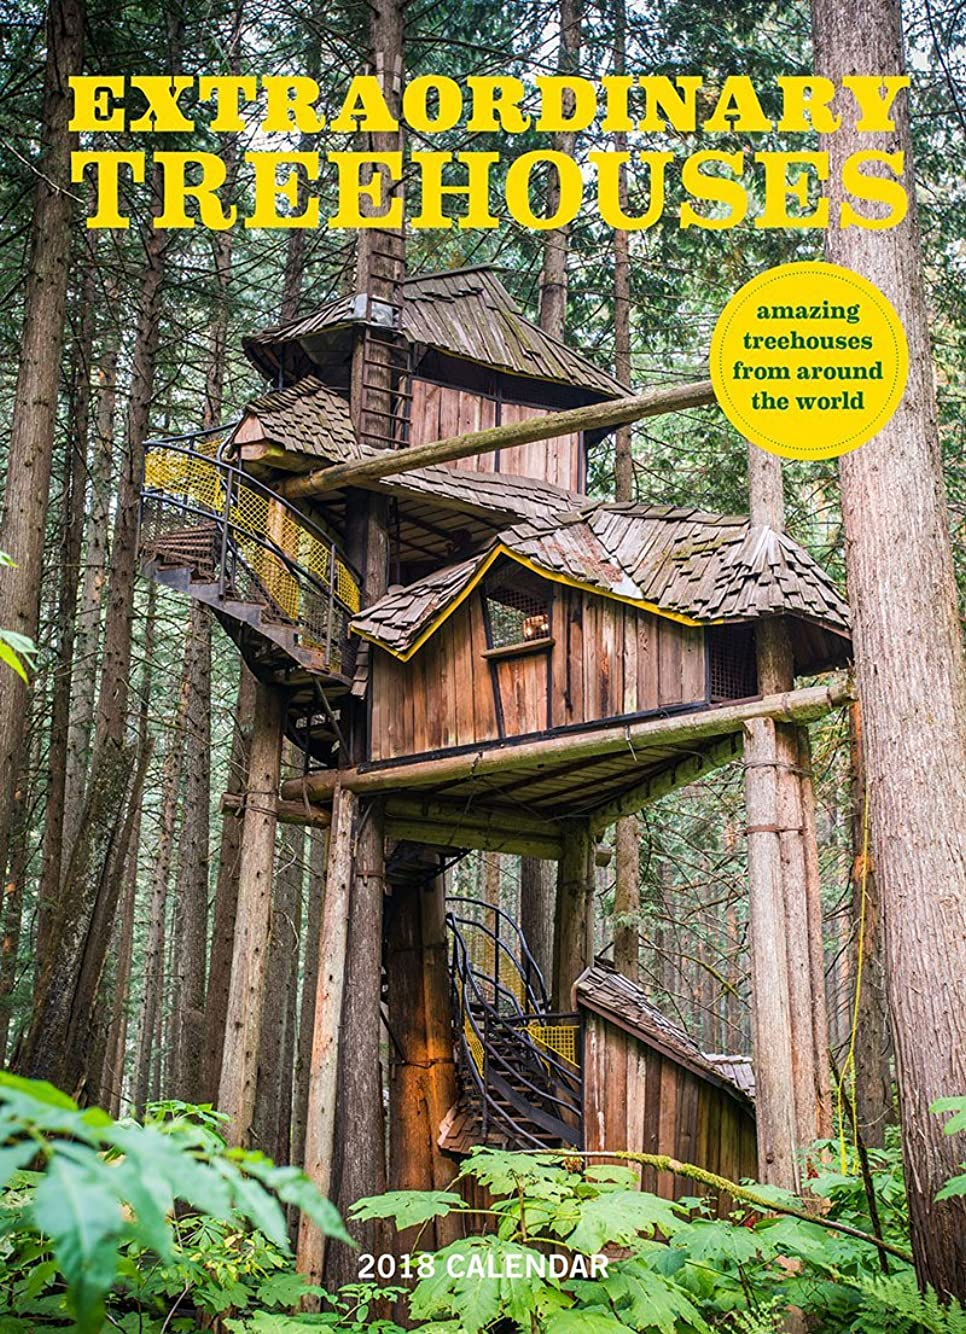 兵器庫遷移繁栄Extraordinary Treehouses 2018 Wall Calendar (Calendars 2018)